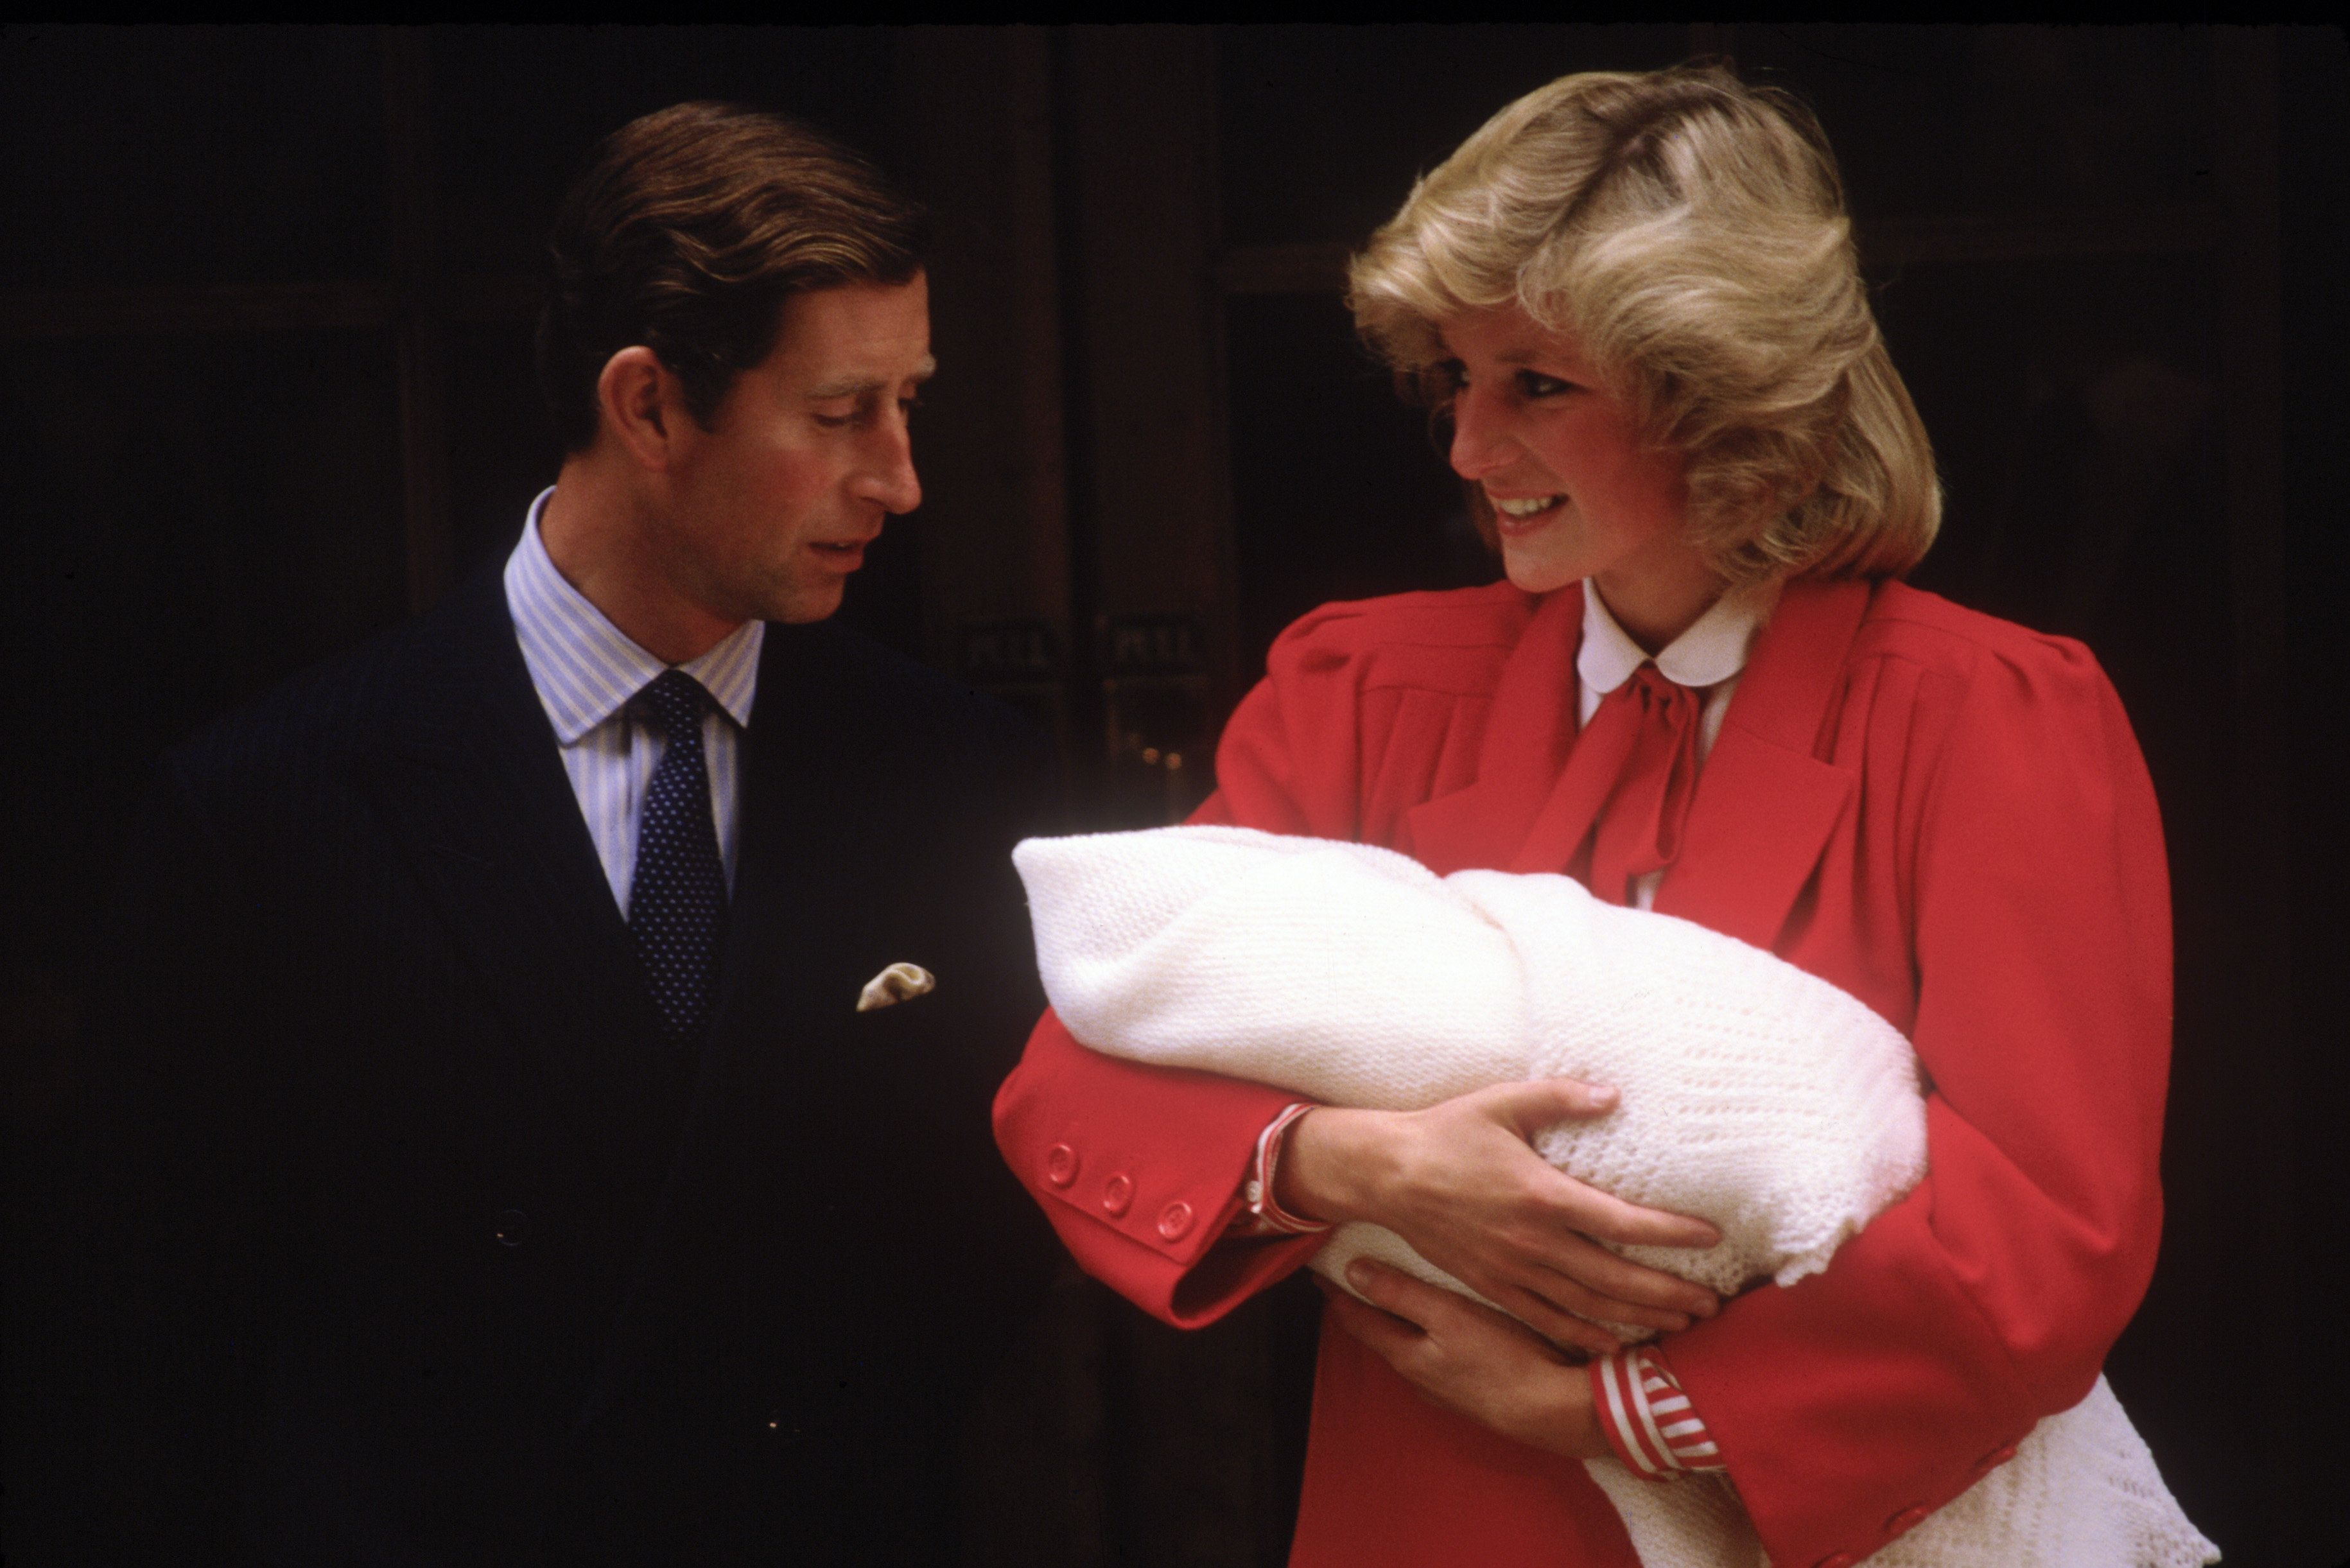 In 1984, Diana gave birth to Prince Harry in London. Charles and Diana later divorced in 1996, and in 1997, Diana died in a n